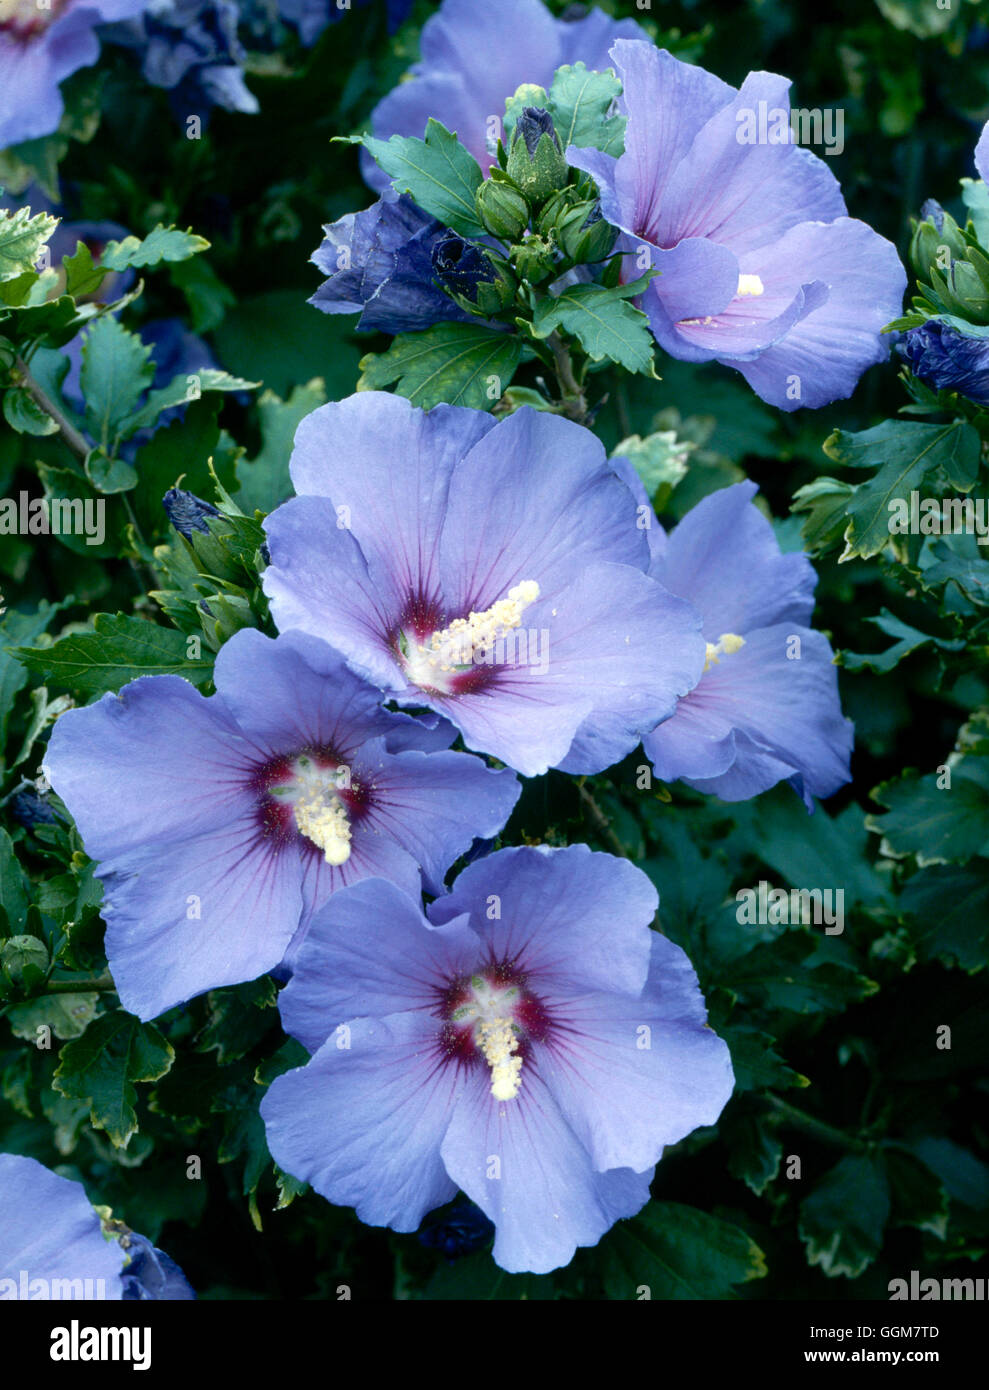 hibiscus syriacus oiseau bleu syn stock photos hibiscus. Black Bedroom Furniture Sets. Home Design Ideas